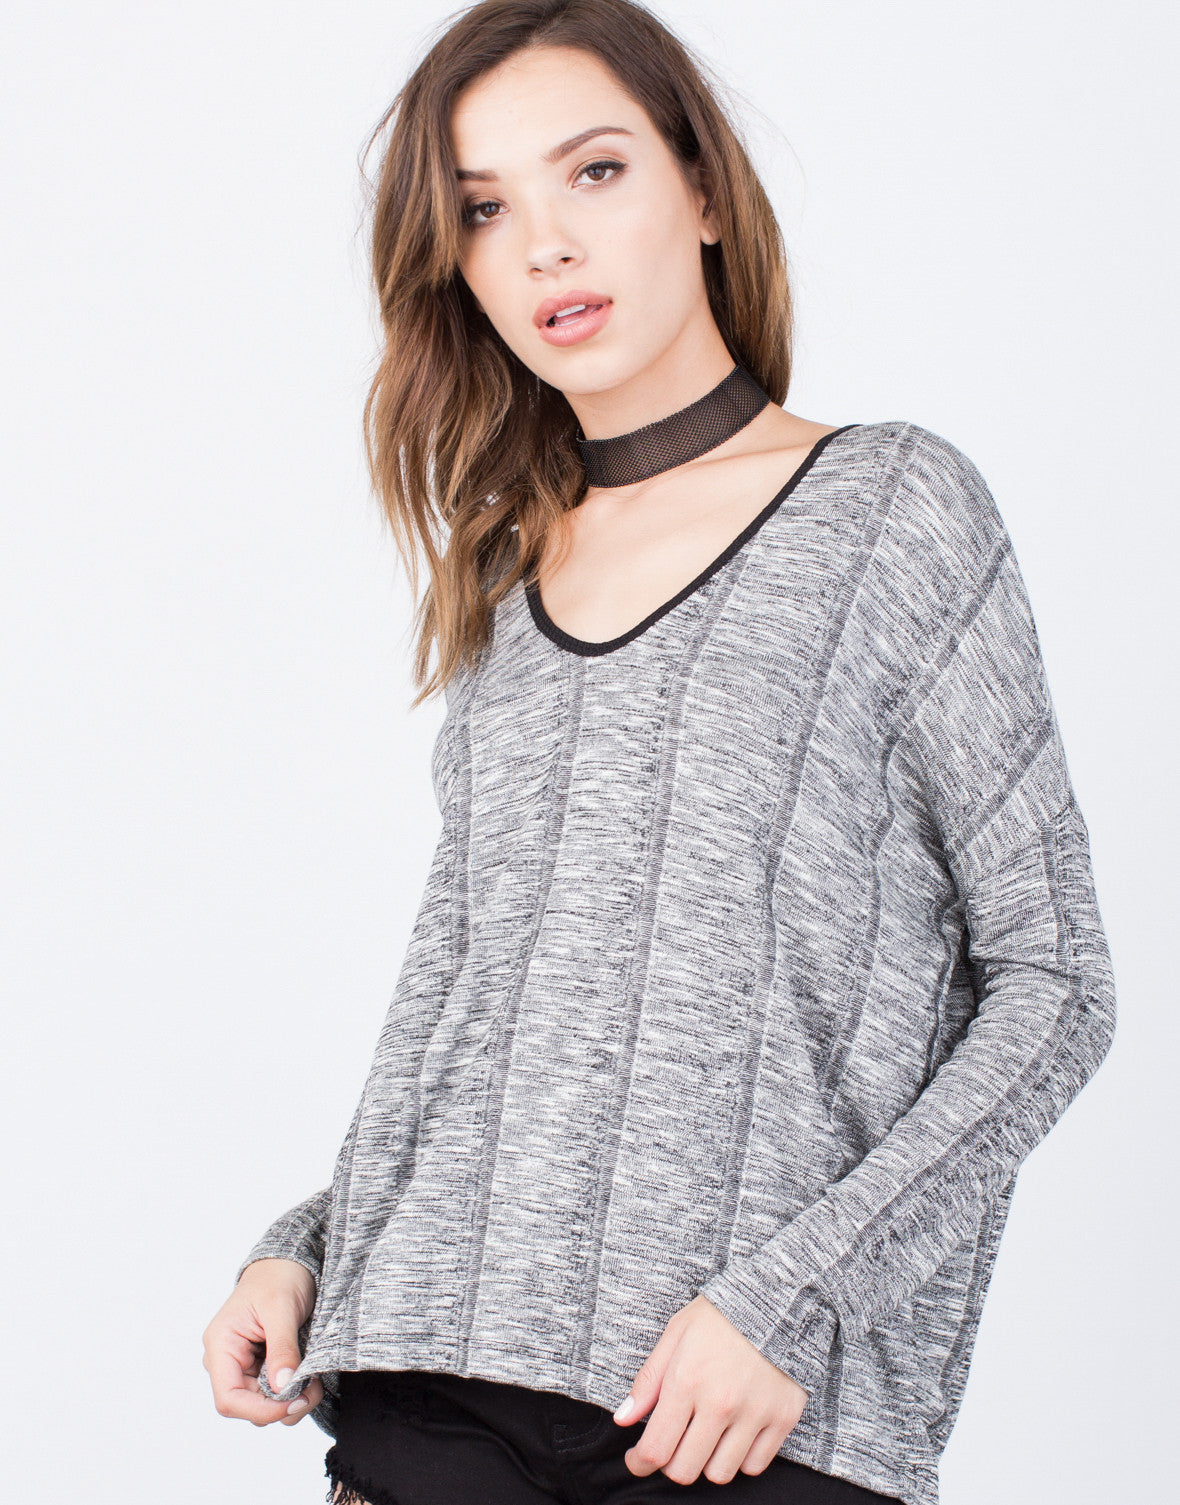 Detail of L/S Rib Knit Top